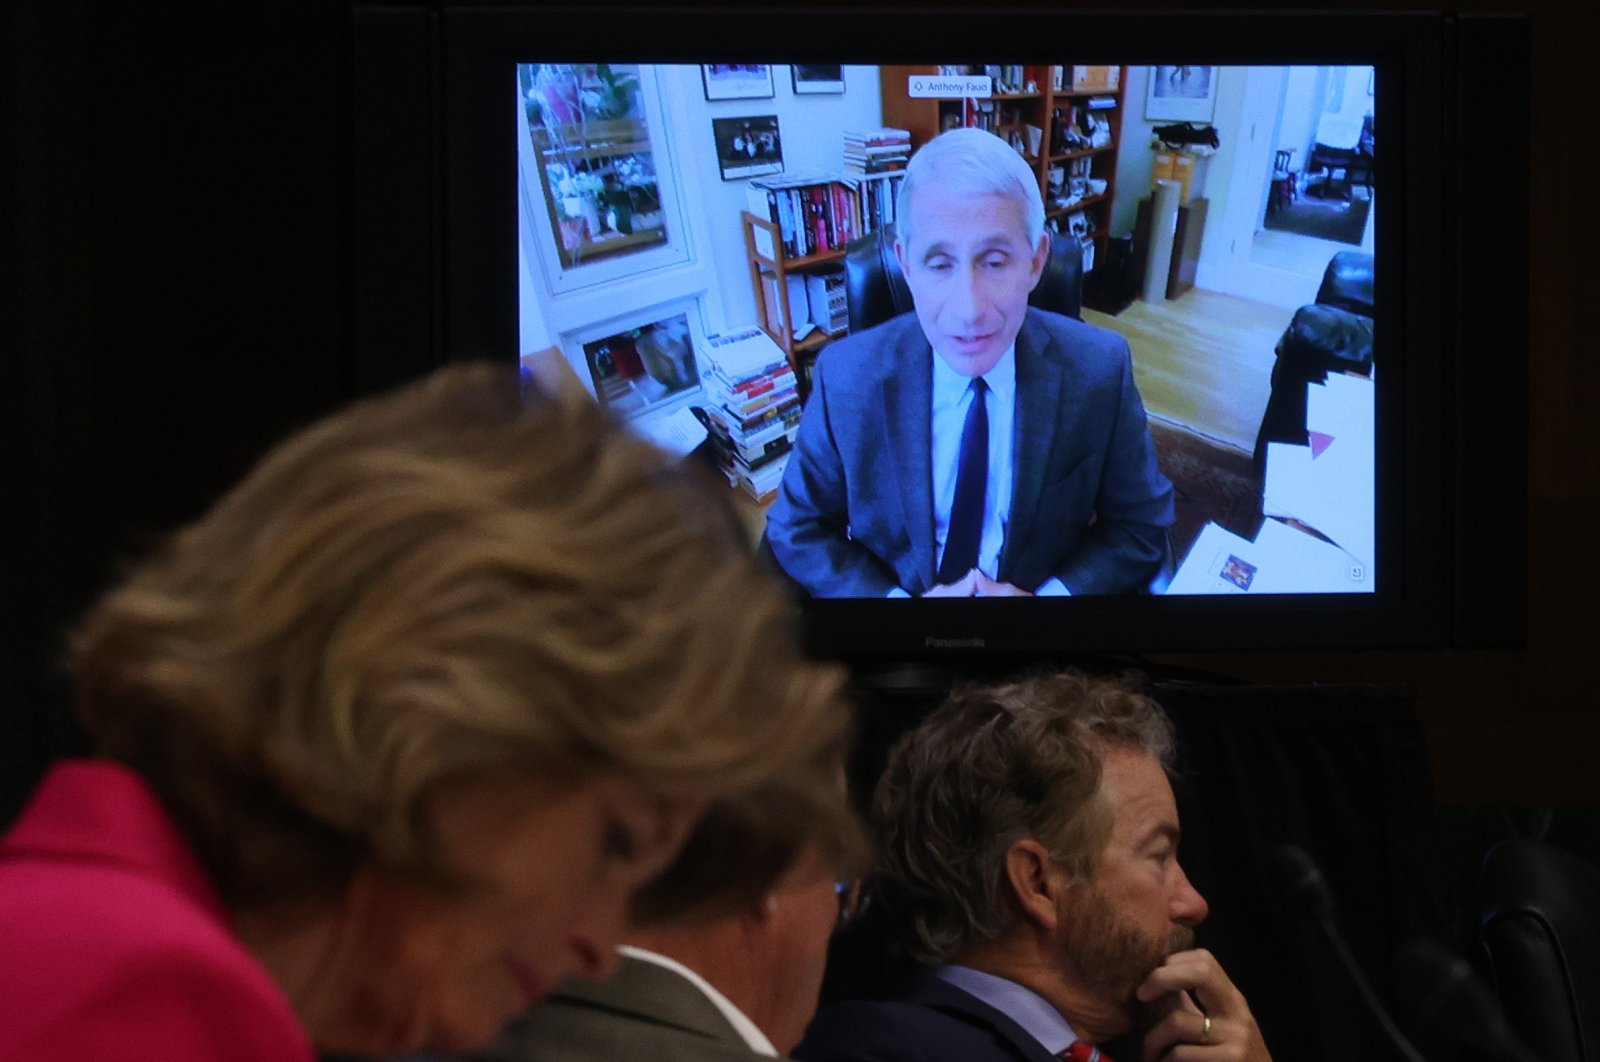 Senators listen to Dr. Anthony Fauci, director of the National Institute of Allergy and Infectious Diseases speak remotely during a Senate committee meeting, Washington, May 12, 2020. (AFP Photo)